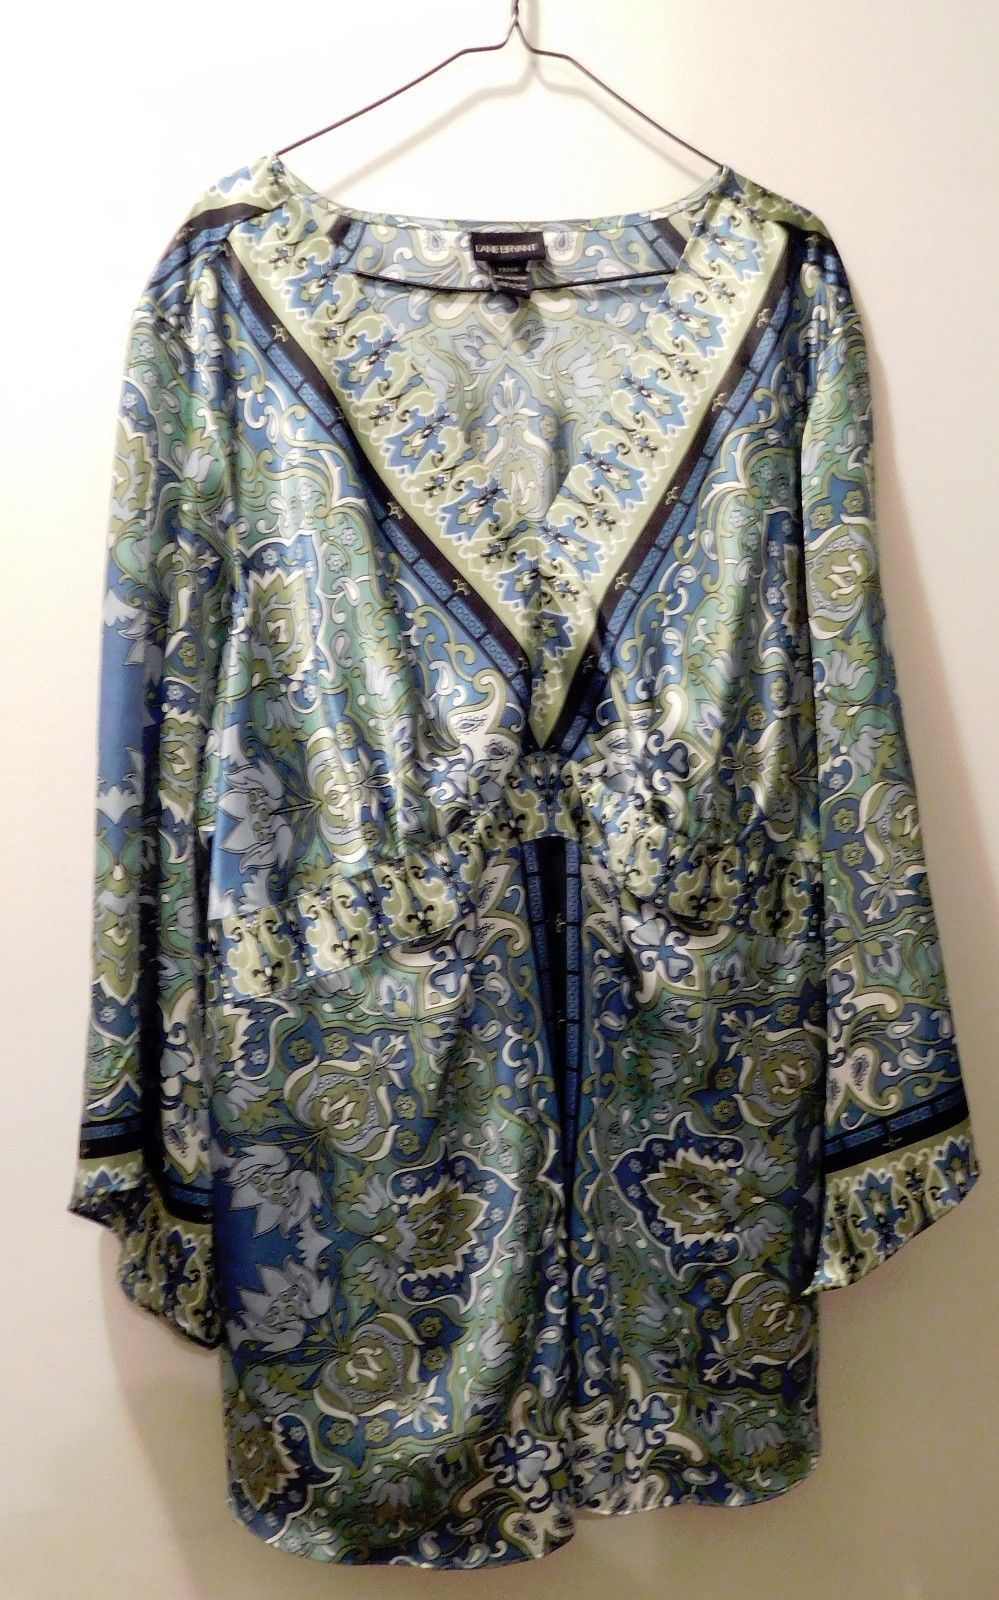 Primary image for Lane Bryant Blue & Green Floral Paisley 3/4 Length Sleeve Blouse -  Size 22/24